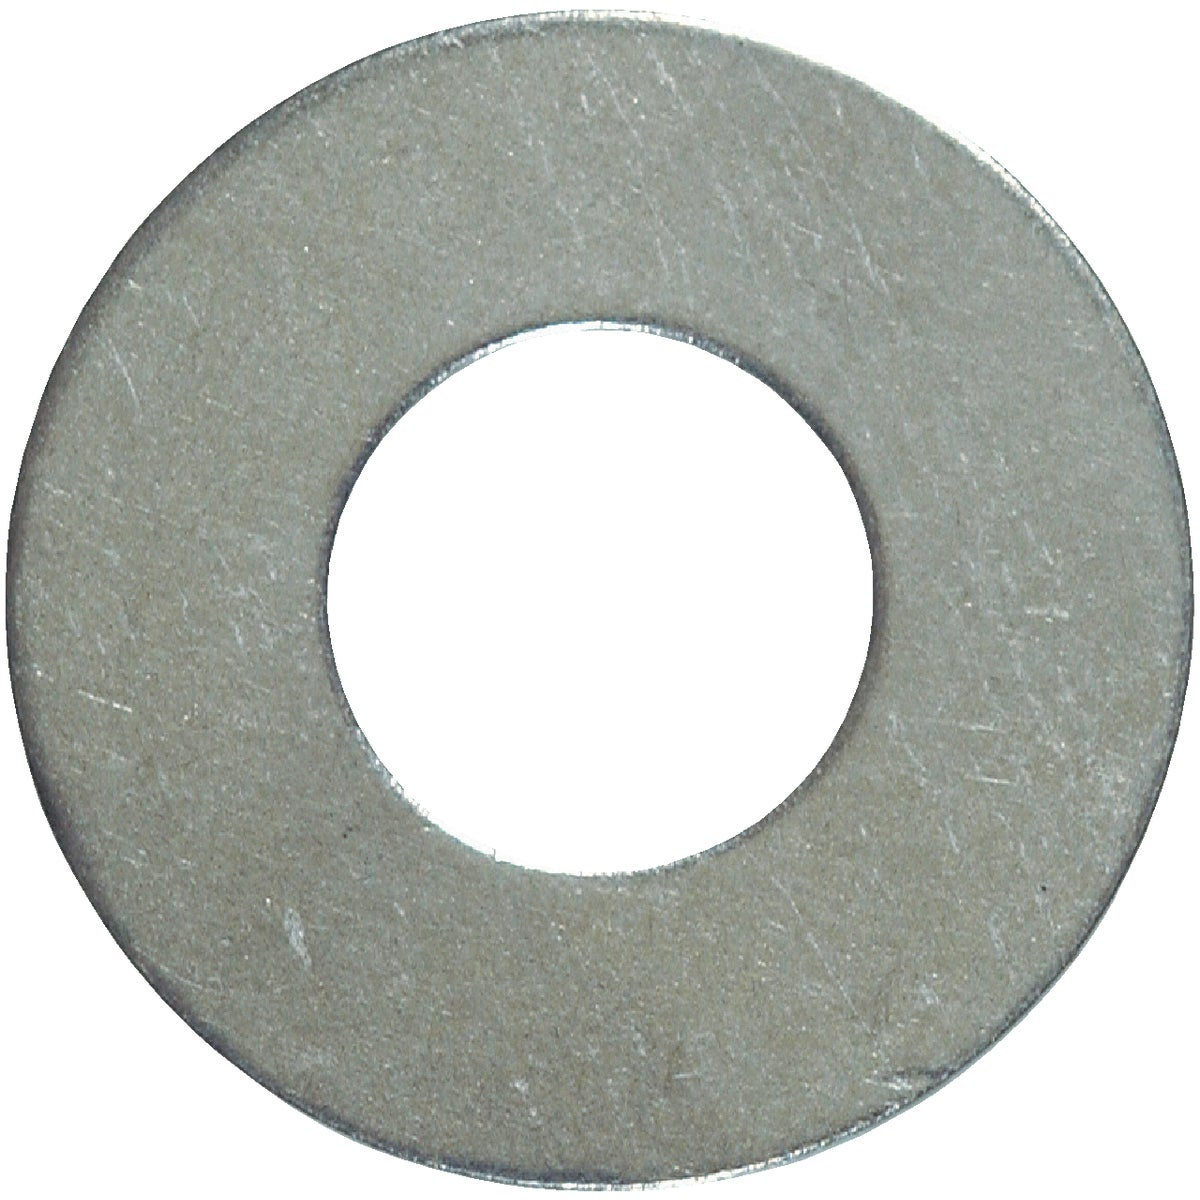 #8 SS FLAT WASHER - 830554 by Hillman Fastener